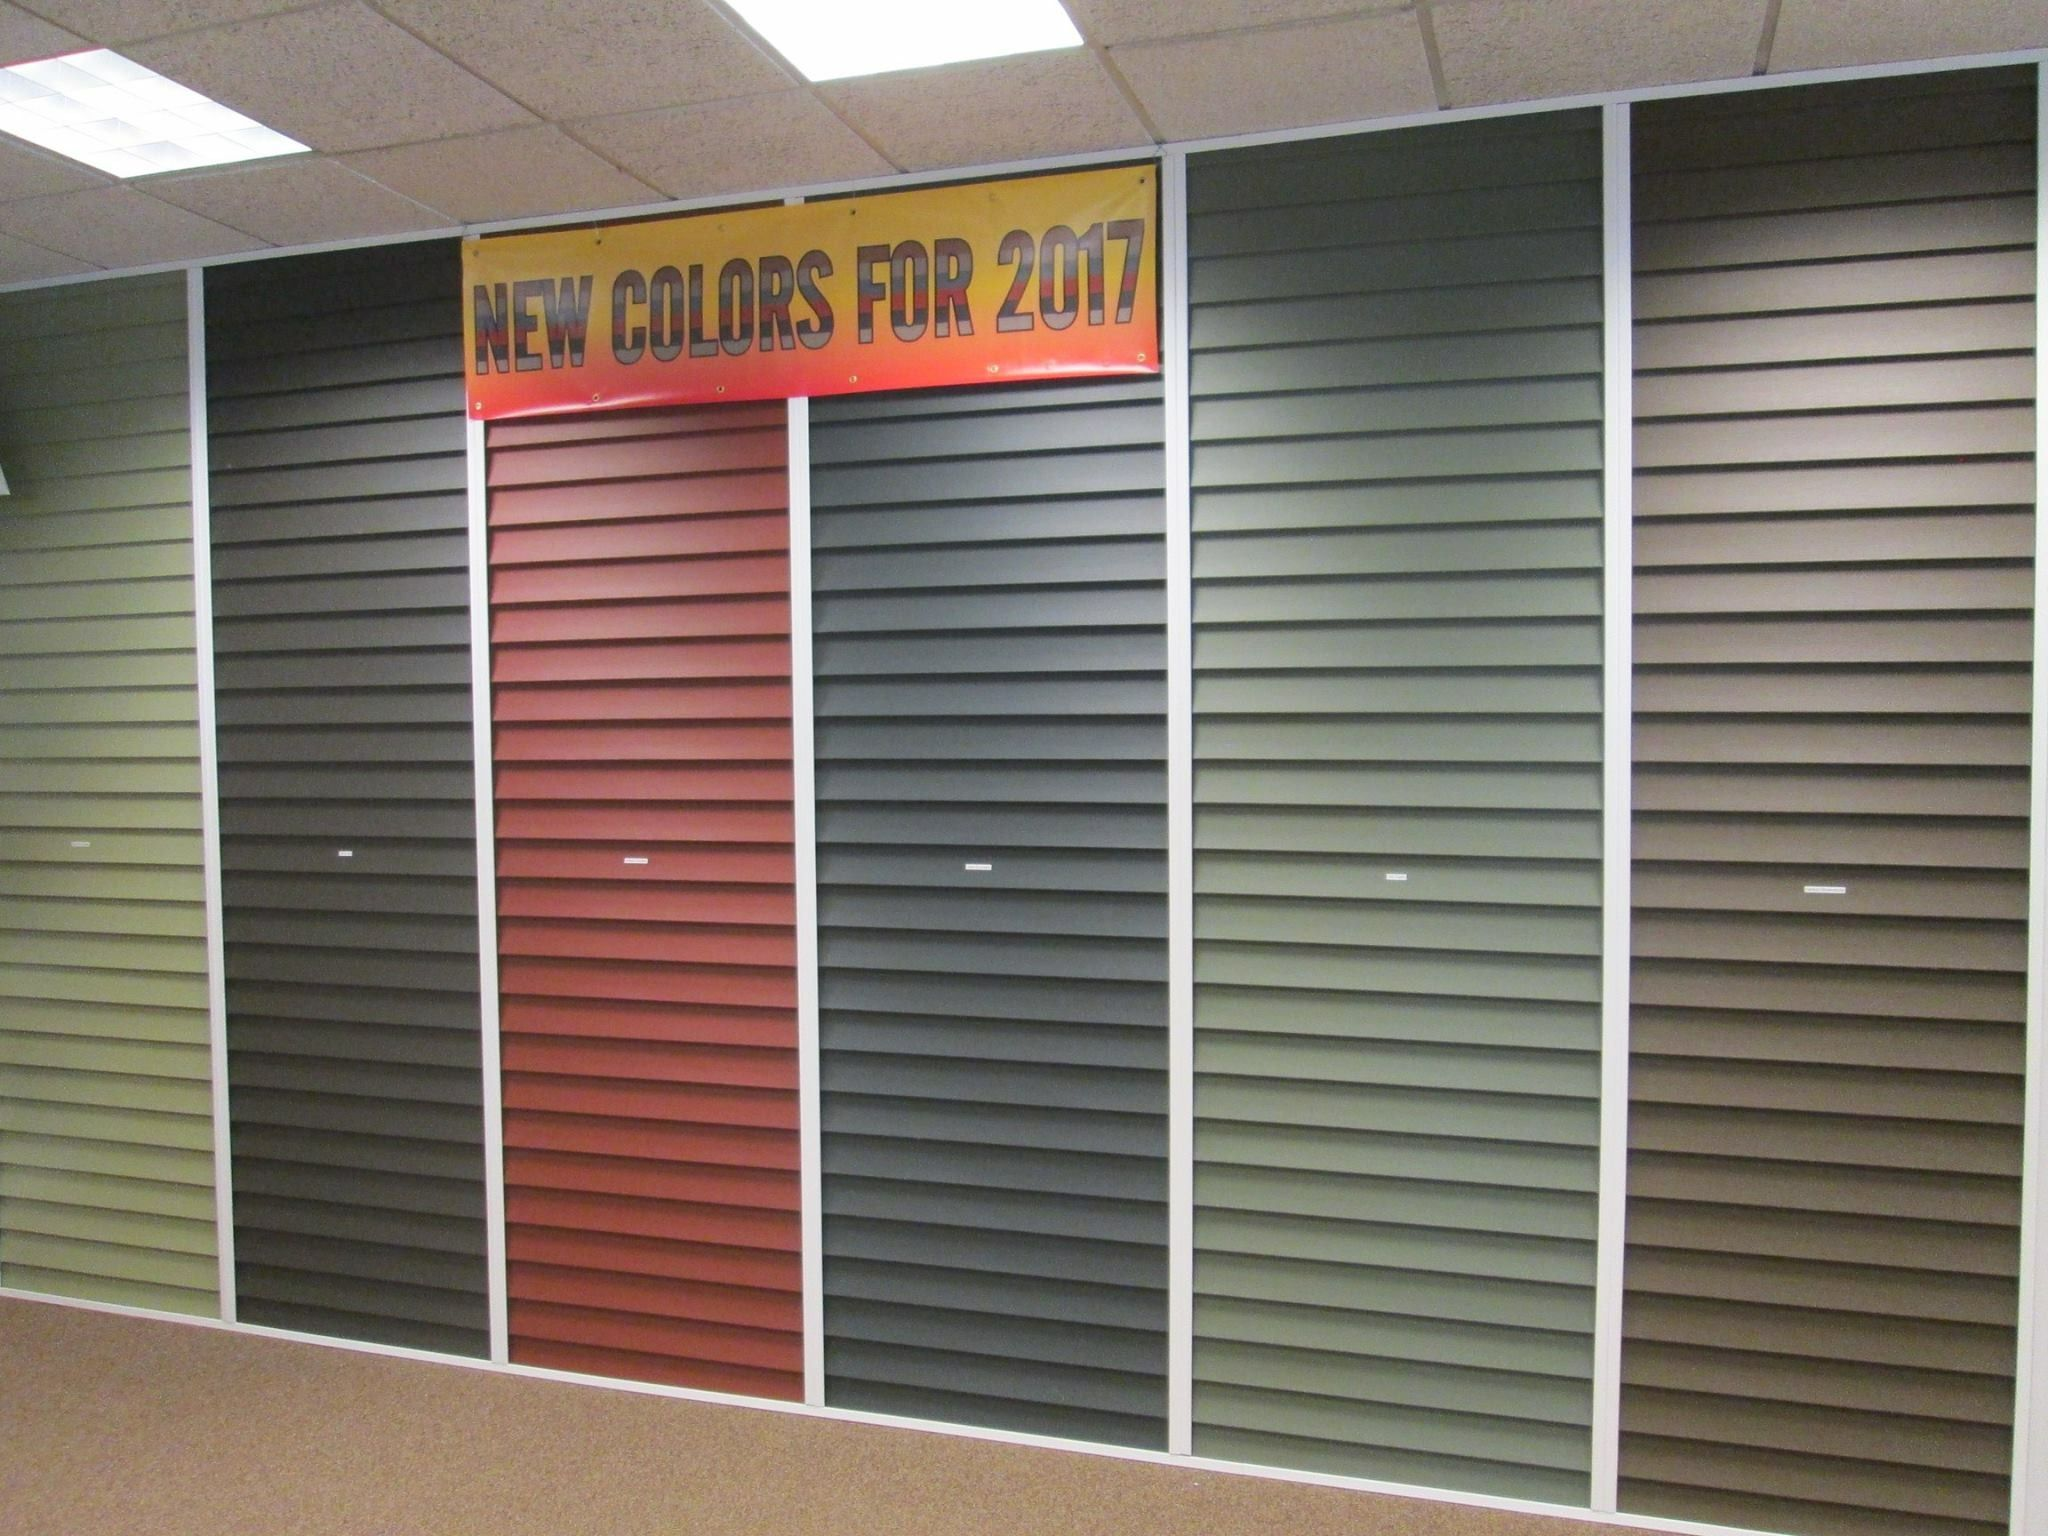 Our New Siding Color Plygem Deep Brunswick 4th From Left